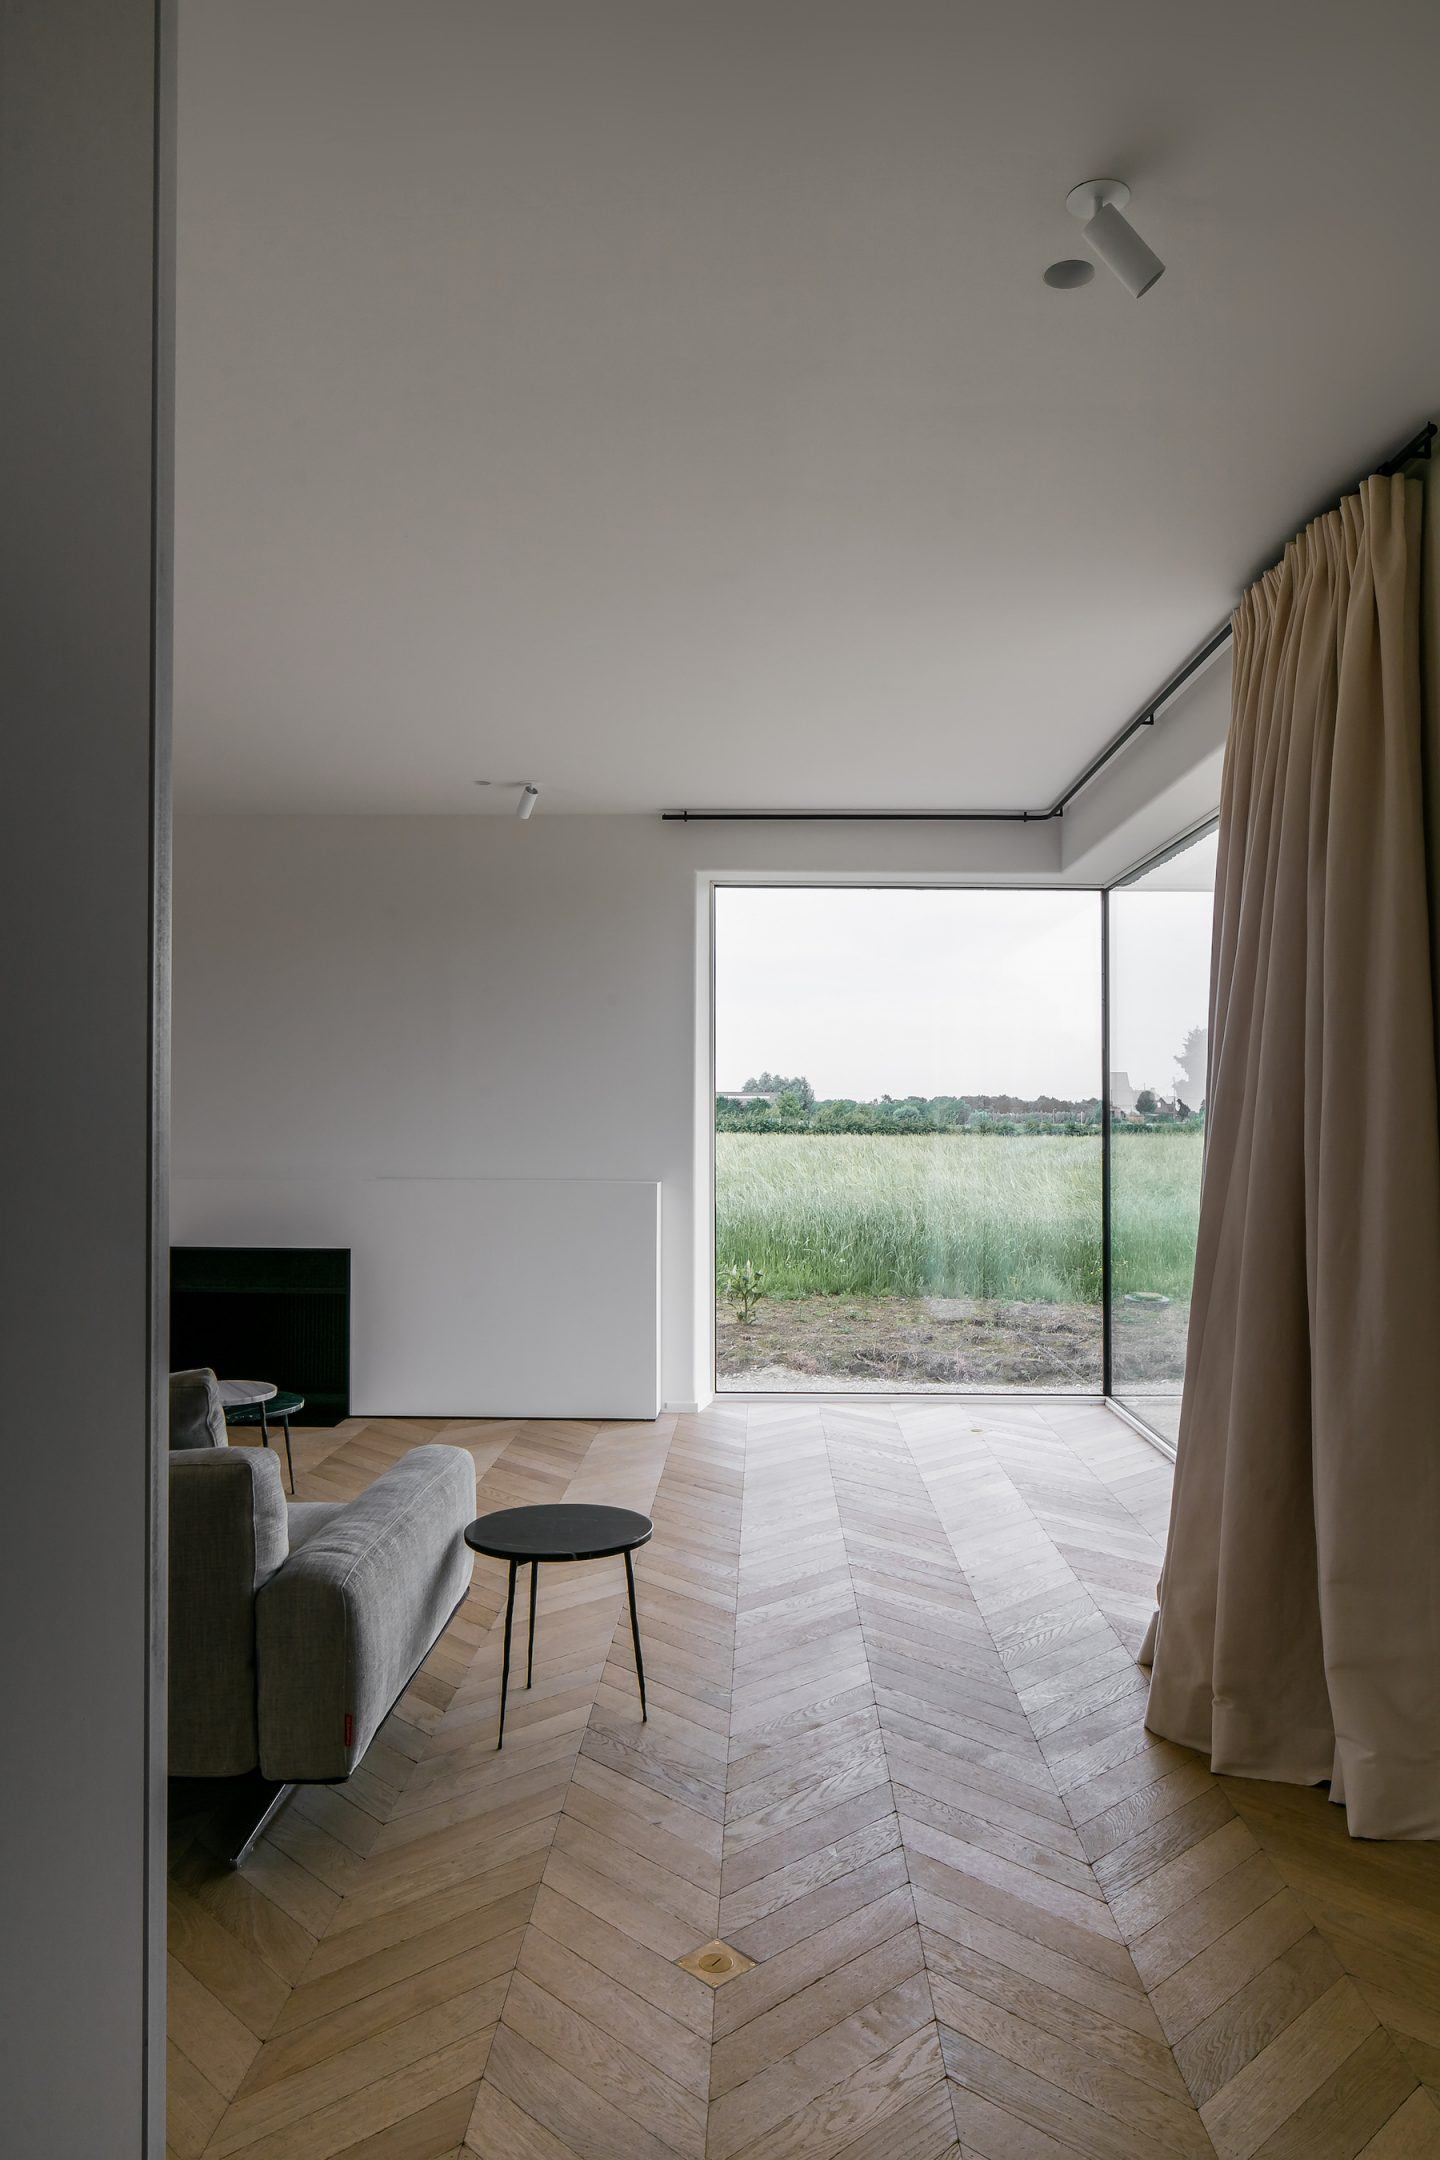 IGNANT-Design-Atelier-10-8-Flanders-Farmhouse-02